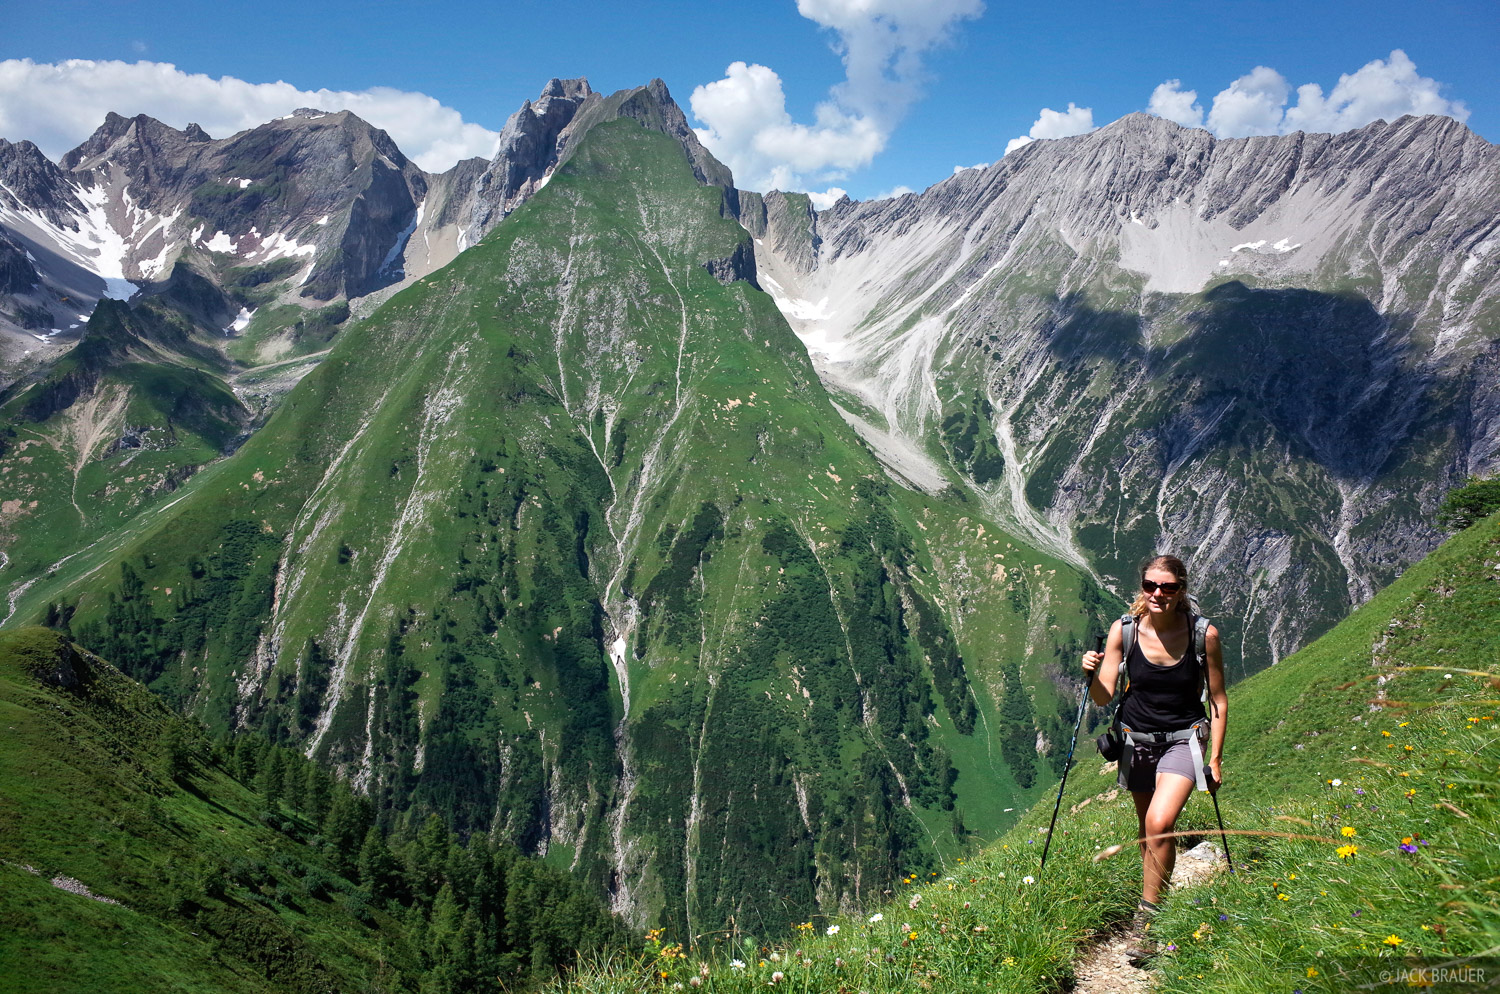 Lechtal Alps, Austria, hiking, Memminger, photo